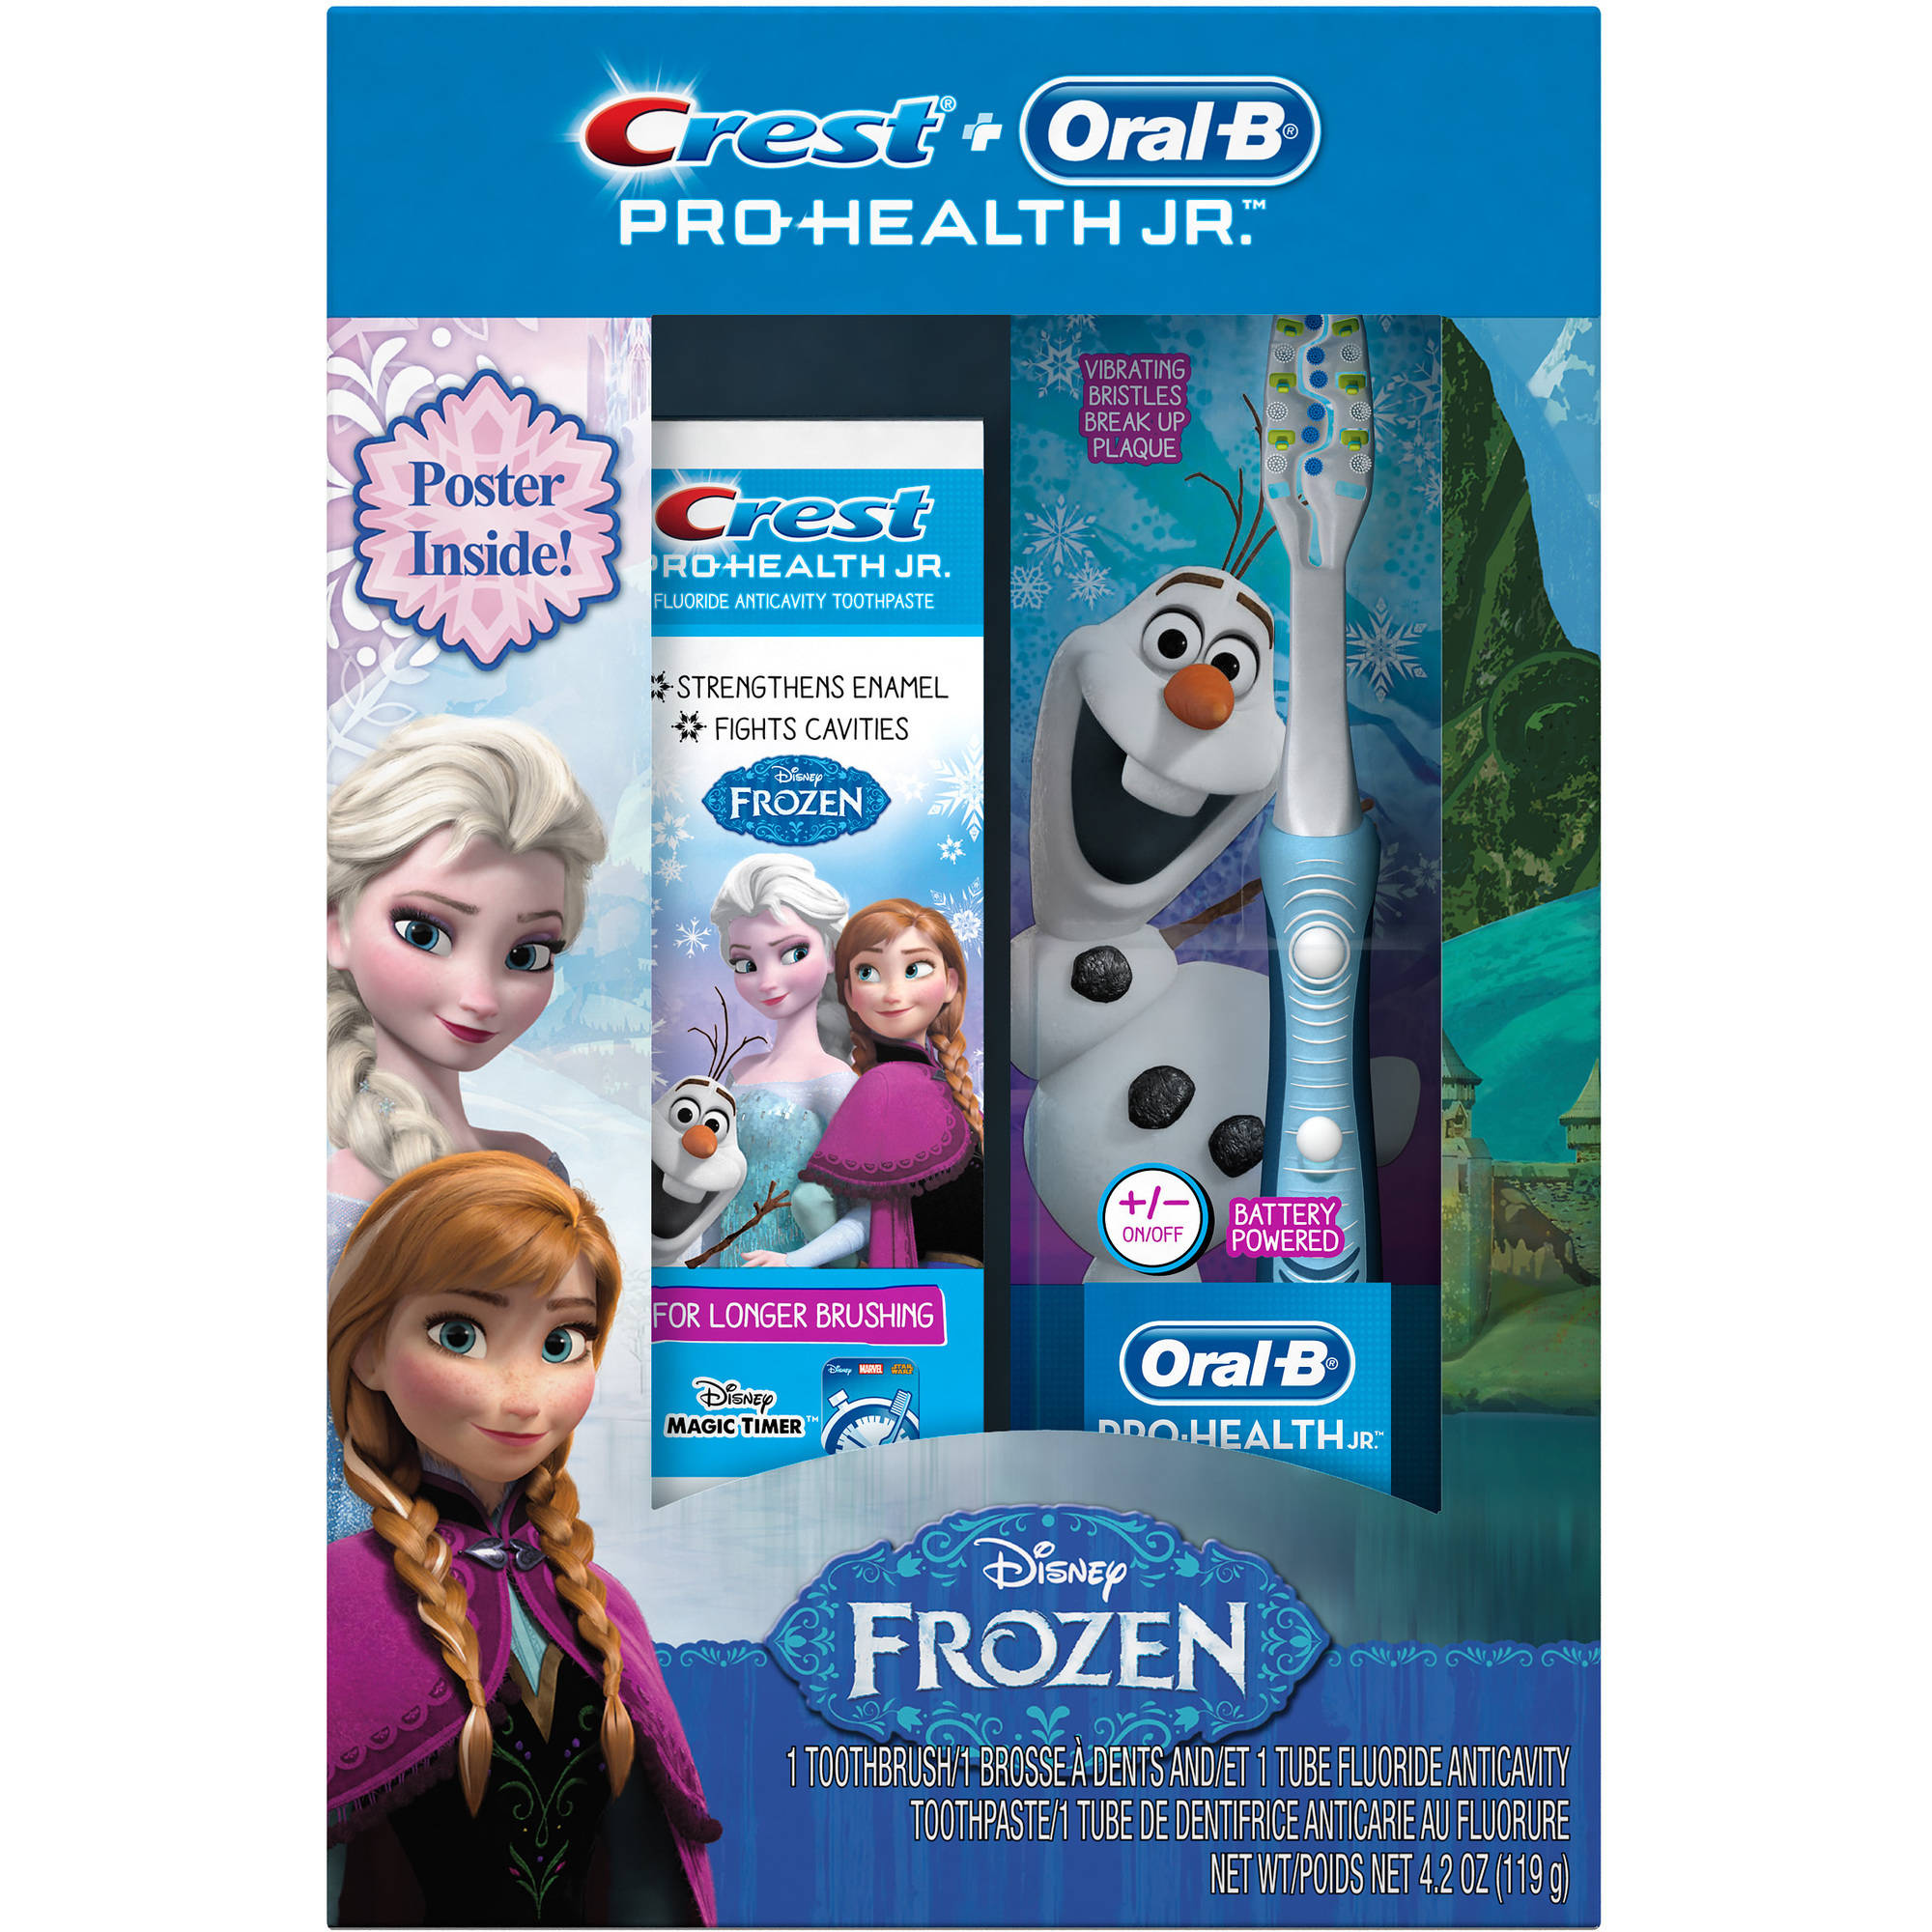 Crest & Oral-B Pro-Health Jr. Disney Frozen Toothpaste & Toothbrush, 3 pc